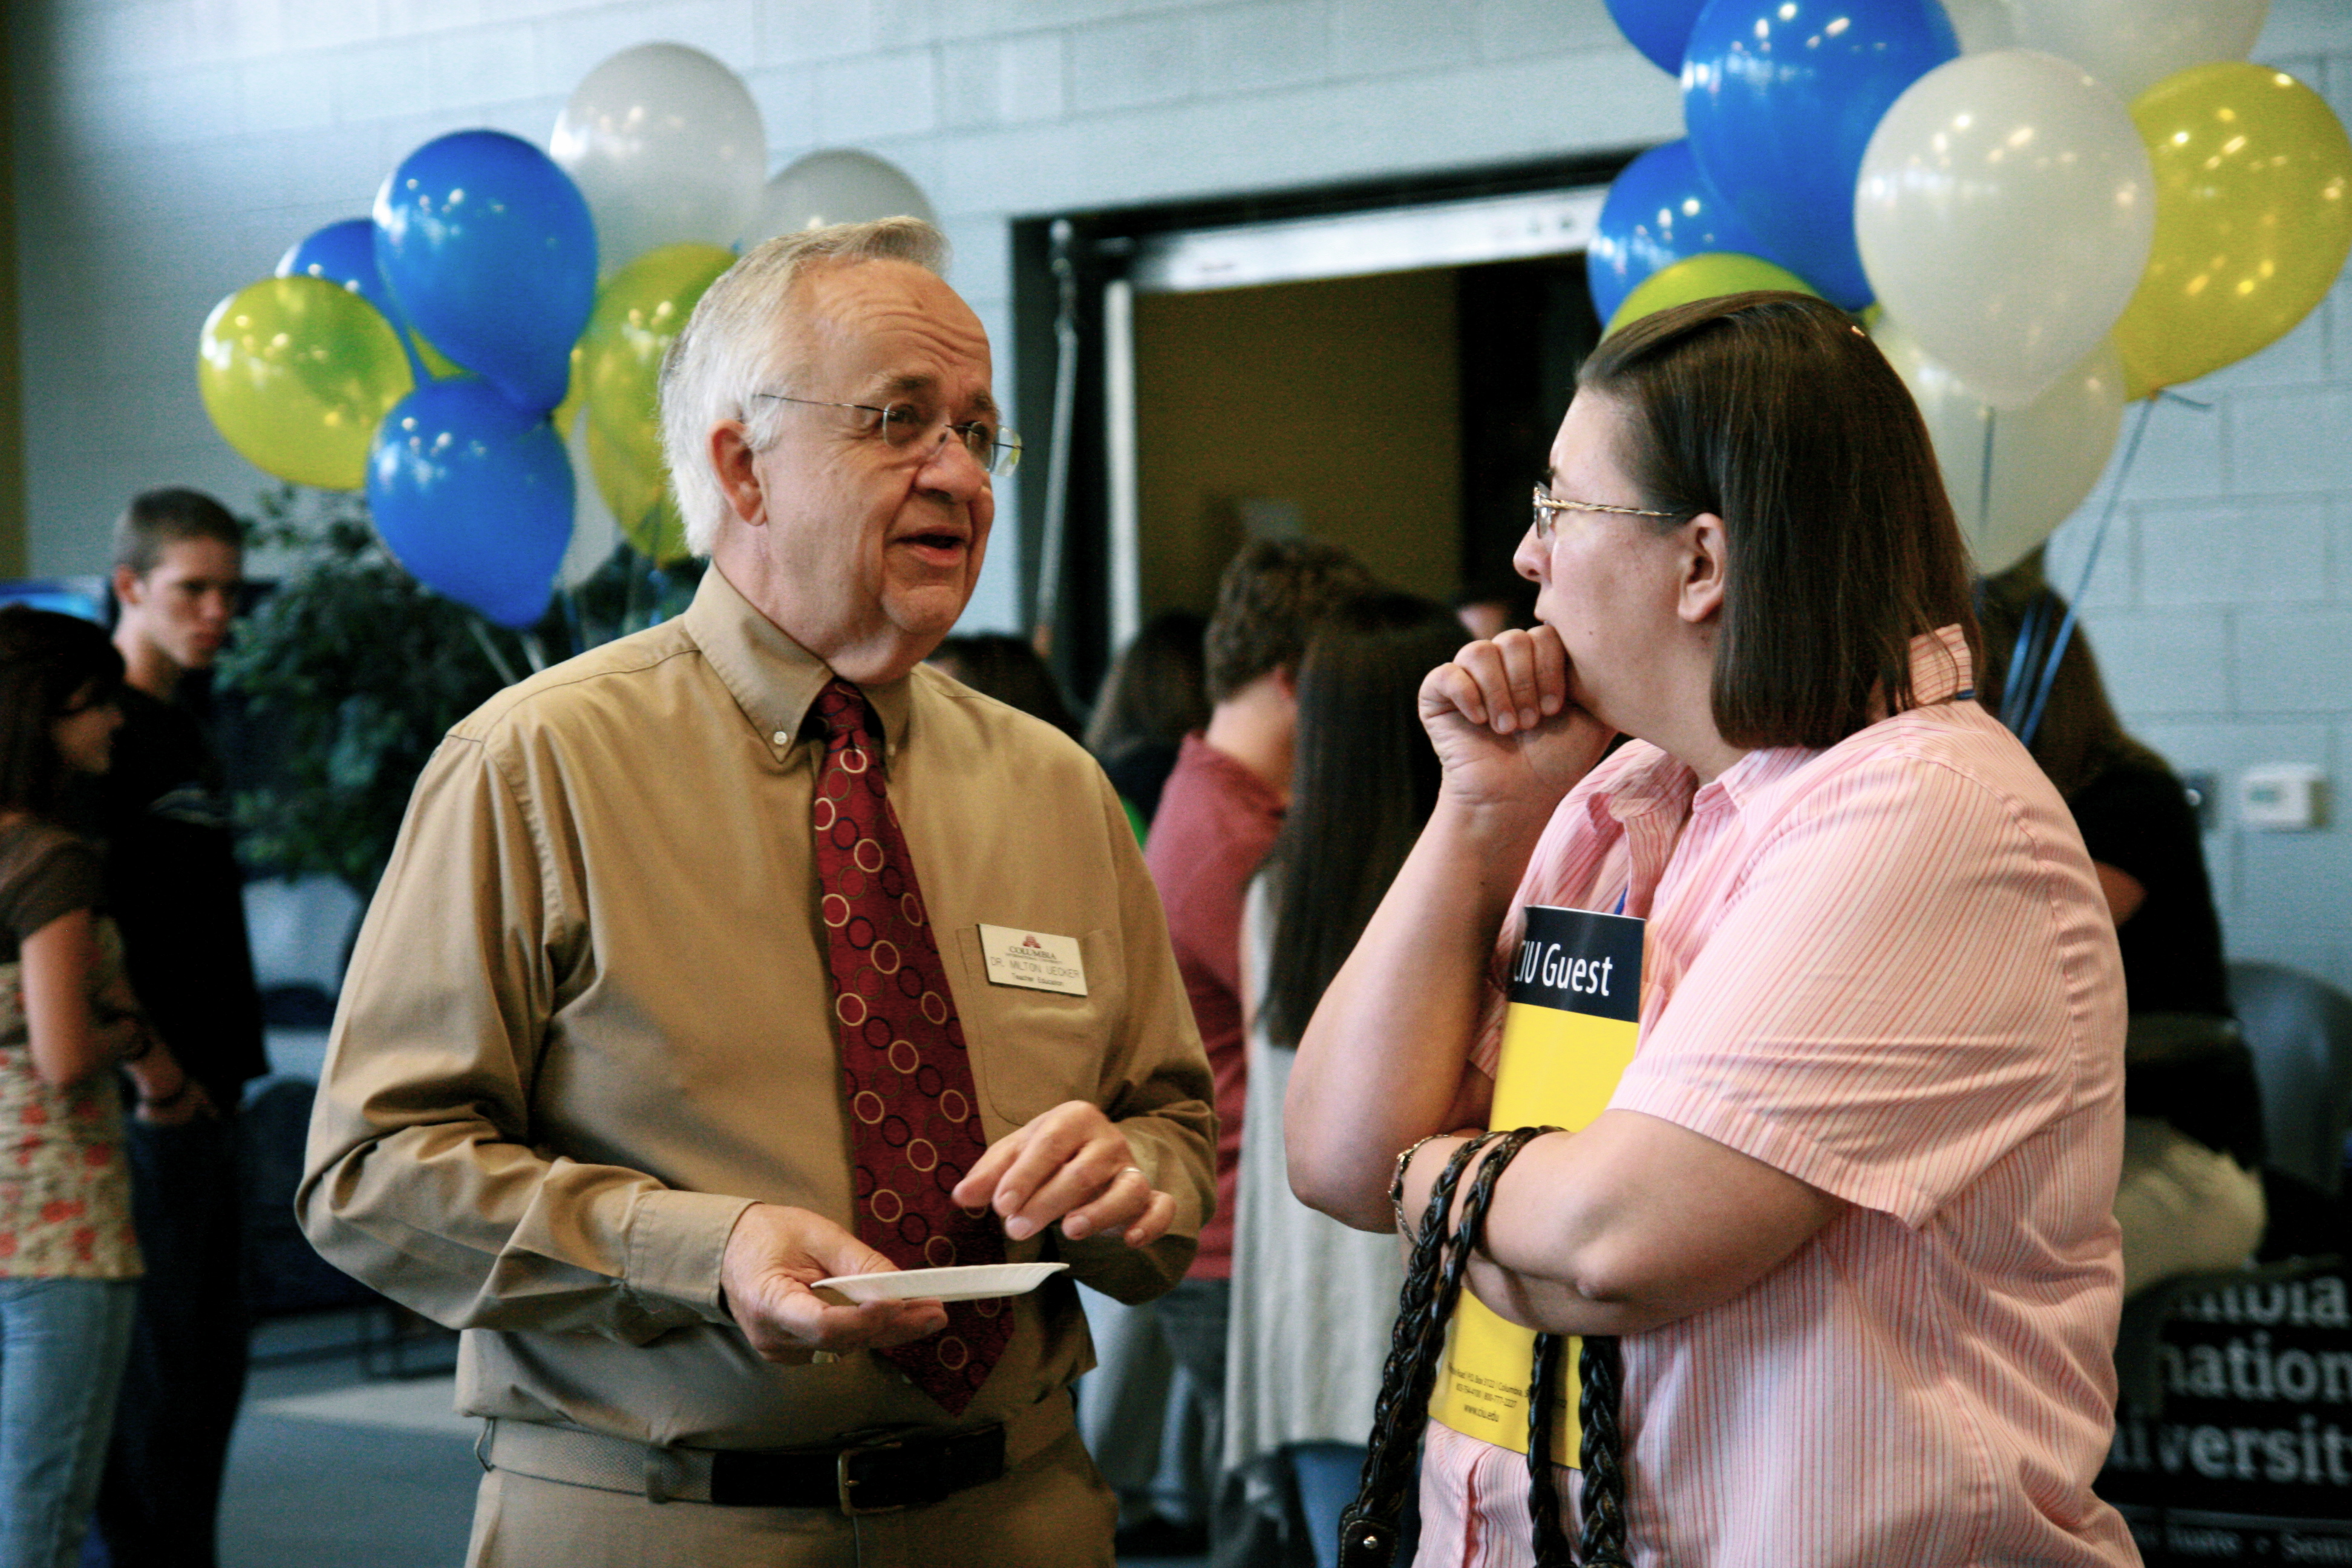 CIU Associate Dean of the School of Education, Dr. Milt Uecker (left), discusses